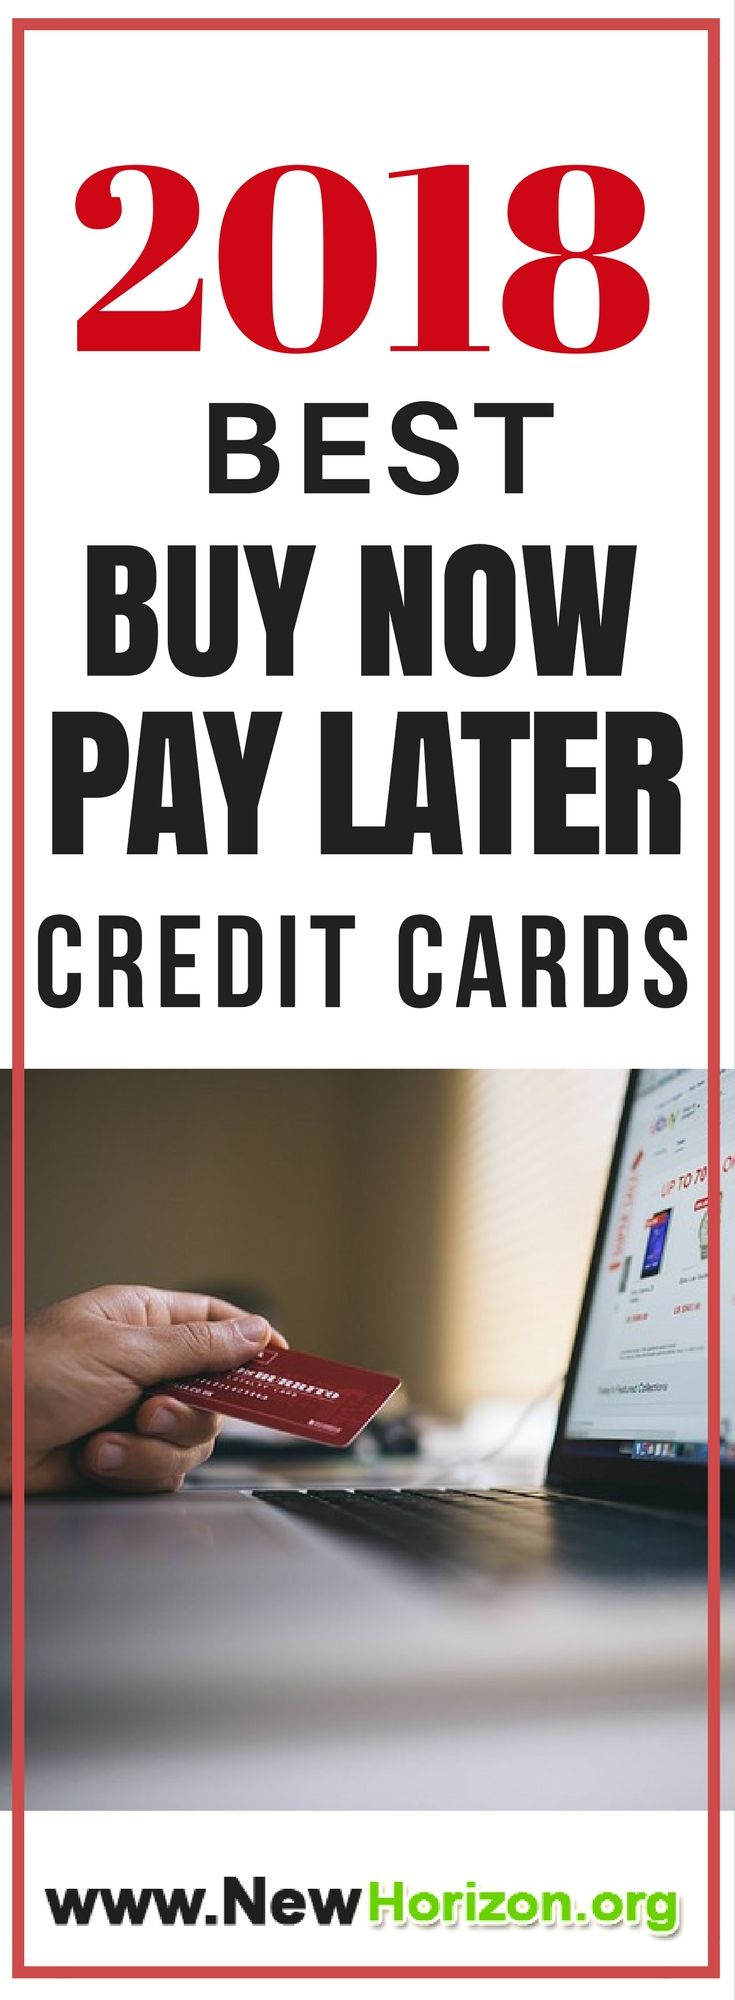 """Check our list of """"Buy Now, Pay Later"""" Credit Cards this 2018. Guaranteed approval with huge credit limit."""